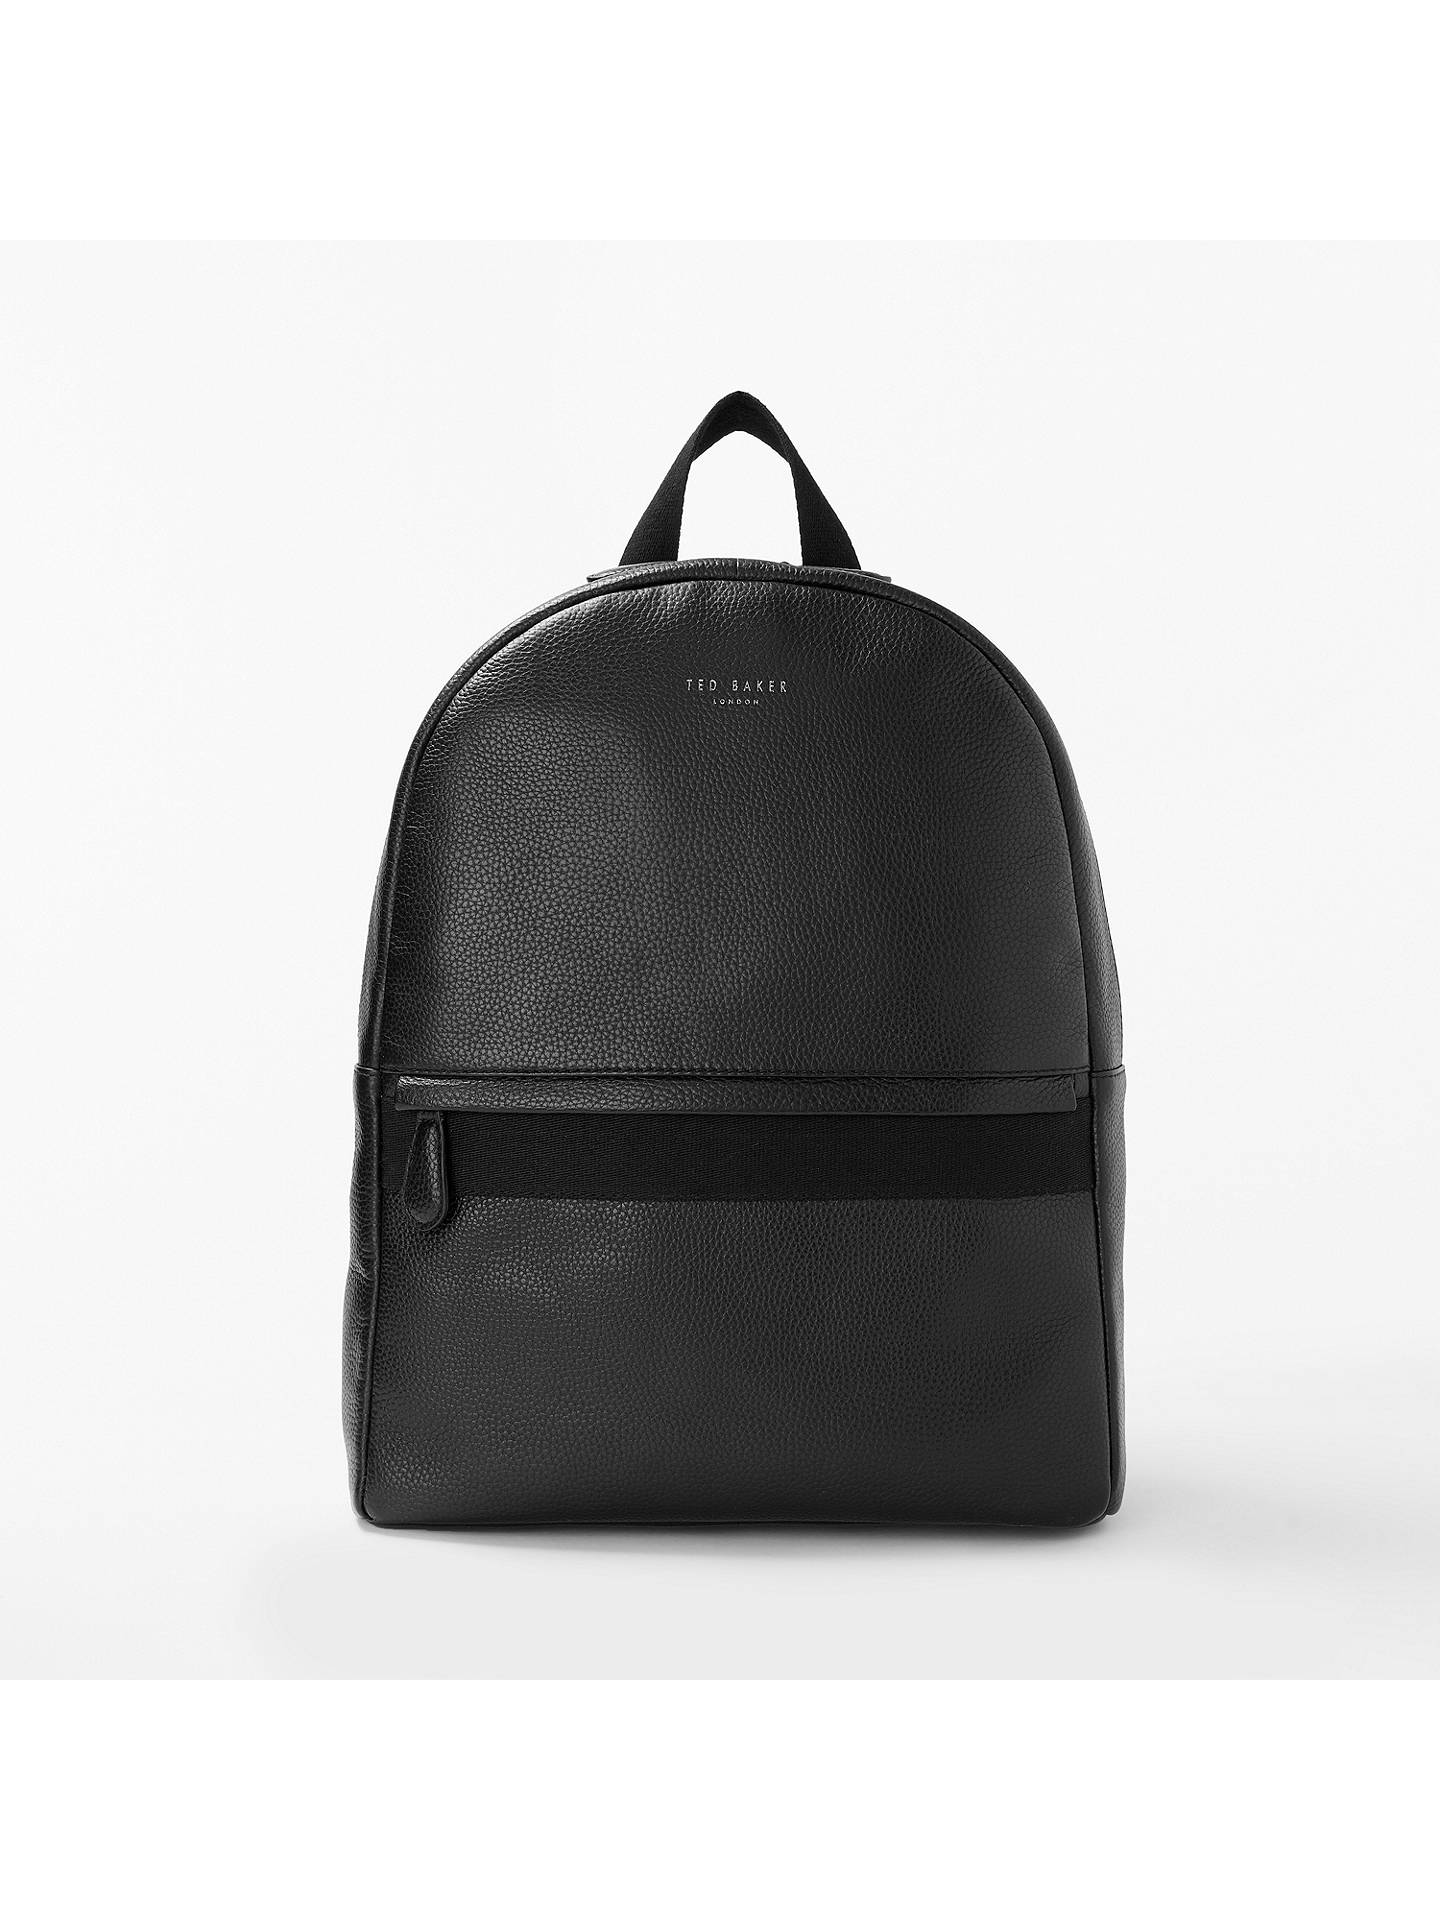 48c7dc42f Buy Ted Baker Rickrak Leather Backpack